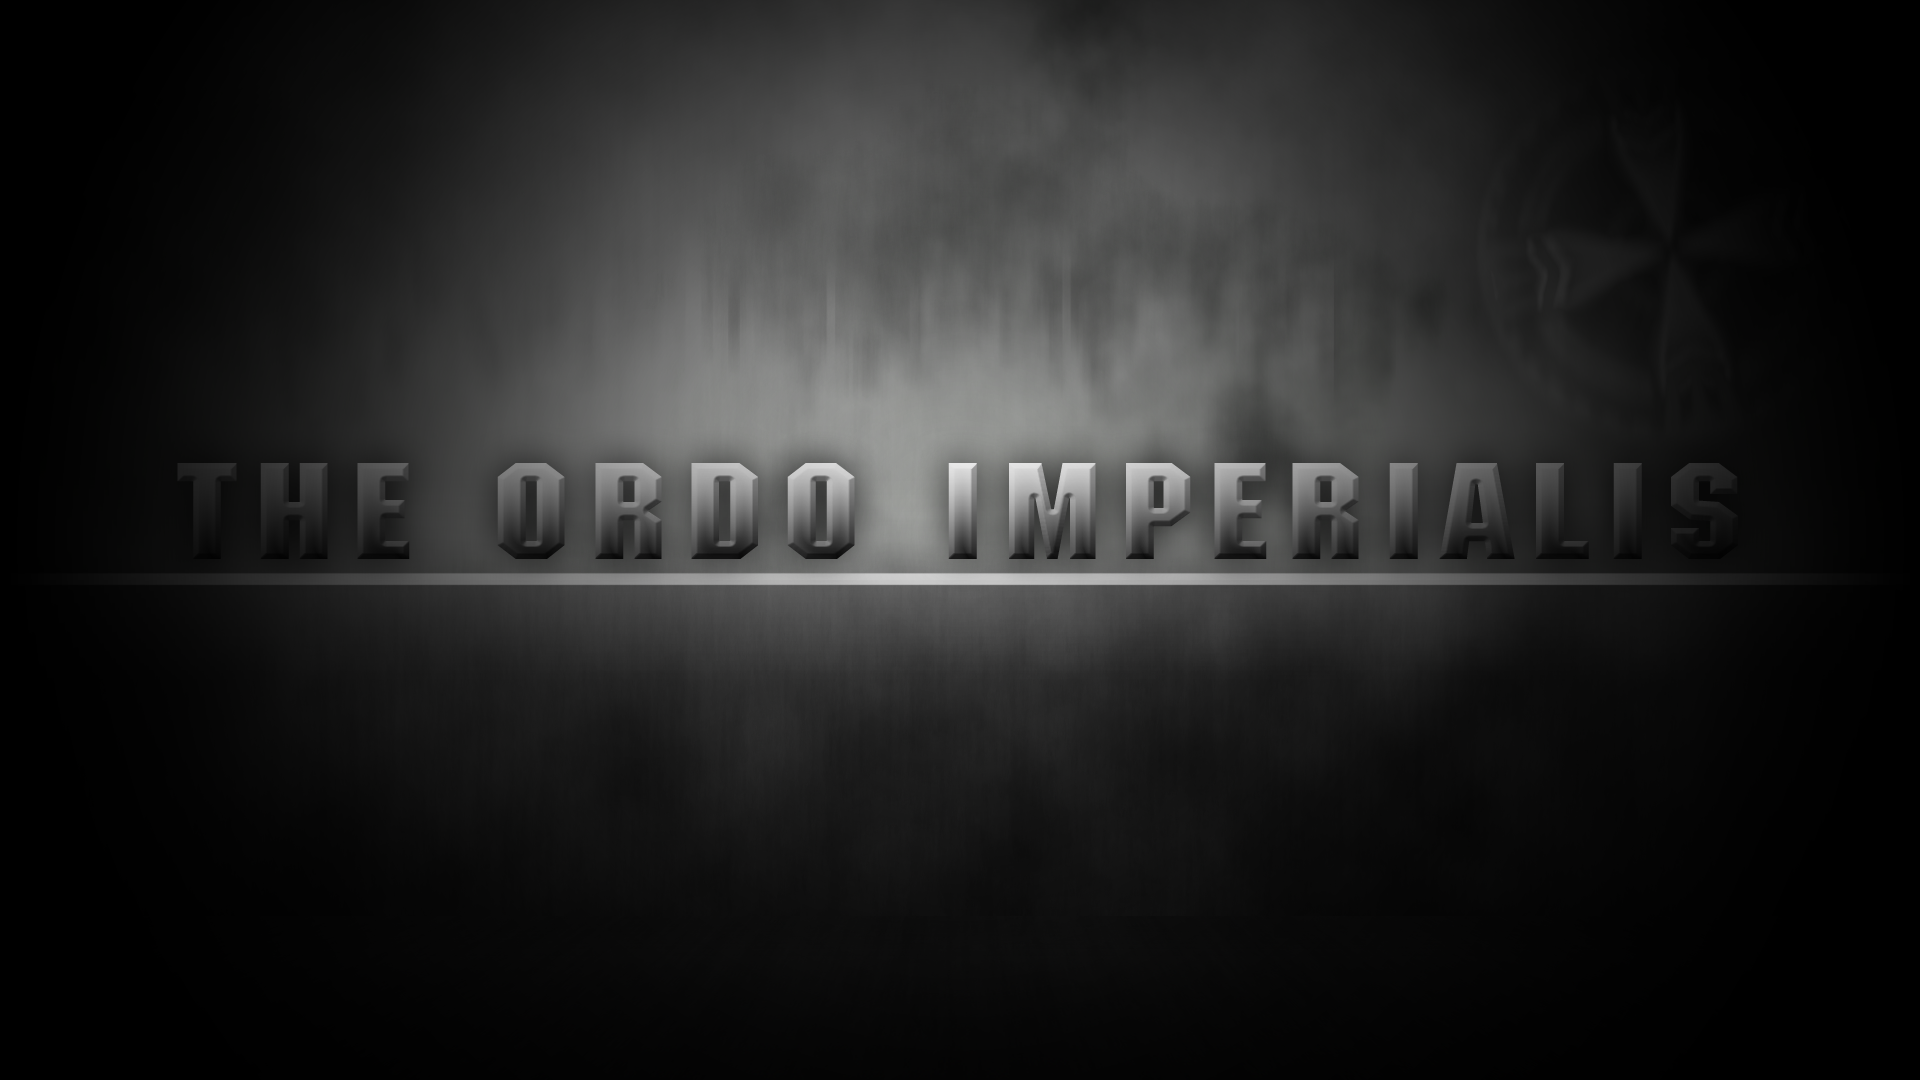 ordo_imperialis_wallpaper_001_by_xoza-d6